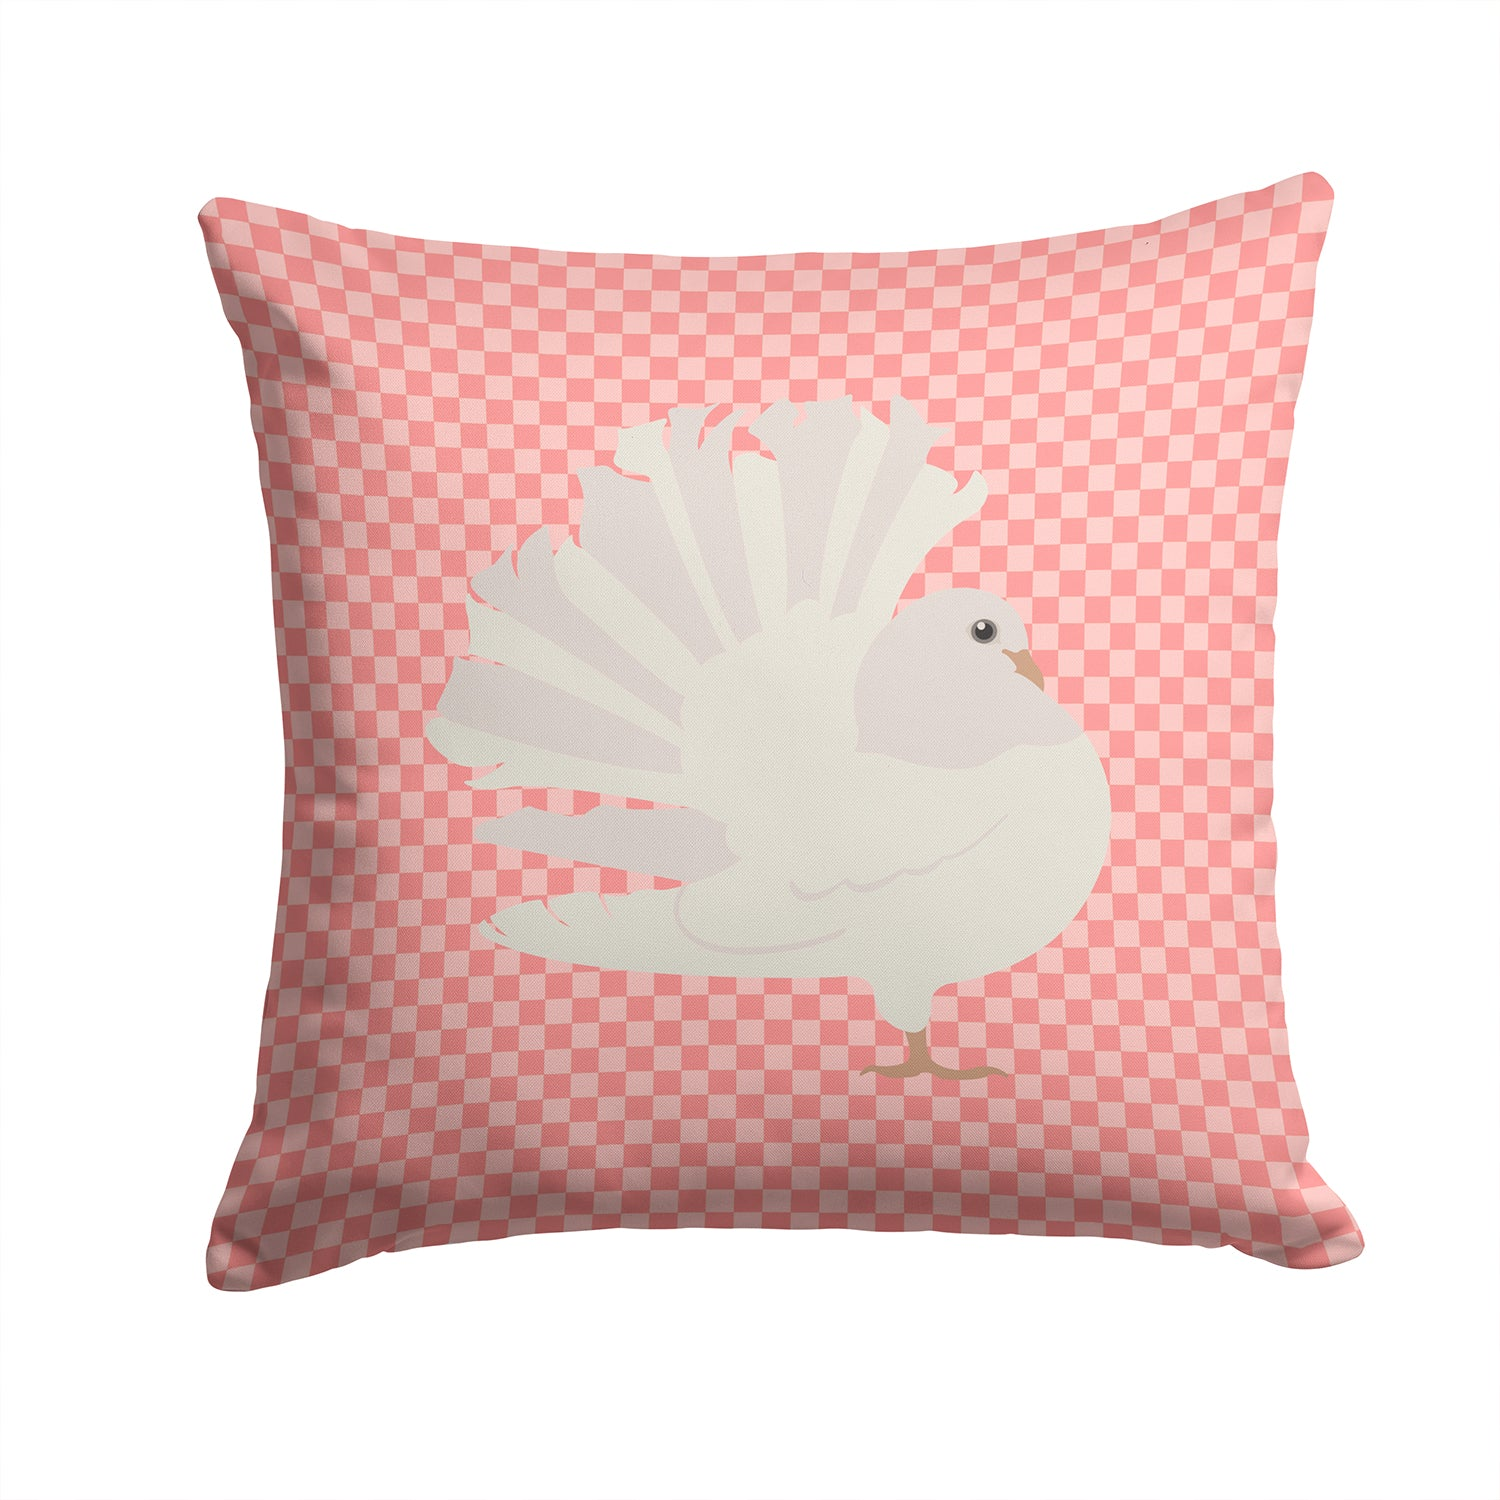 Buy this Silver Fantail Pigeon Pink Check Fabric Decorative Pillow BB7950PW1414